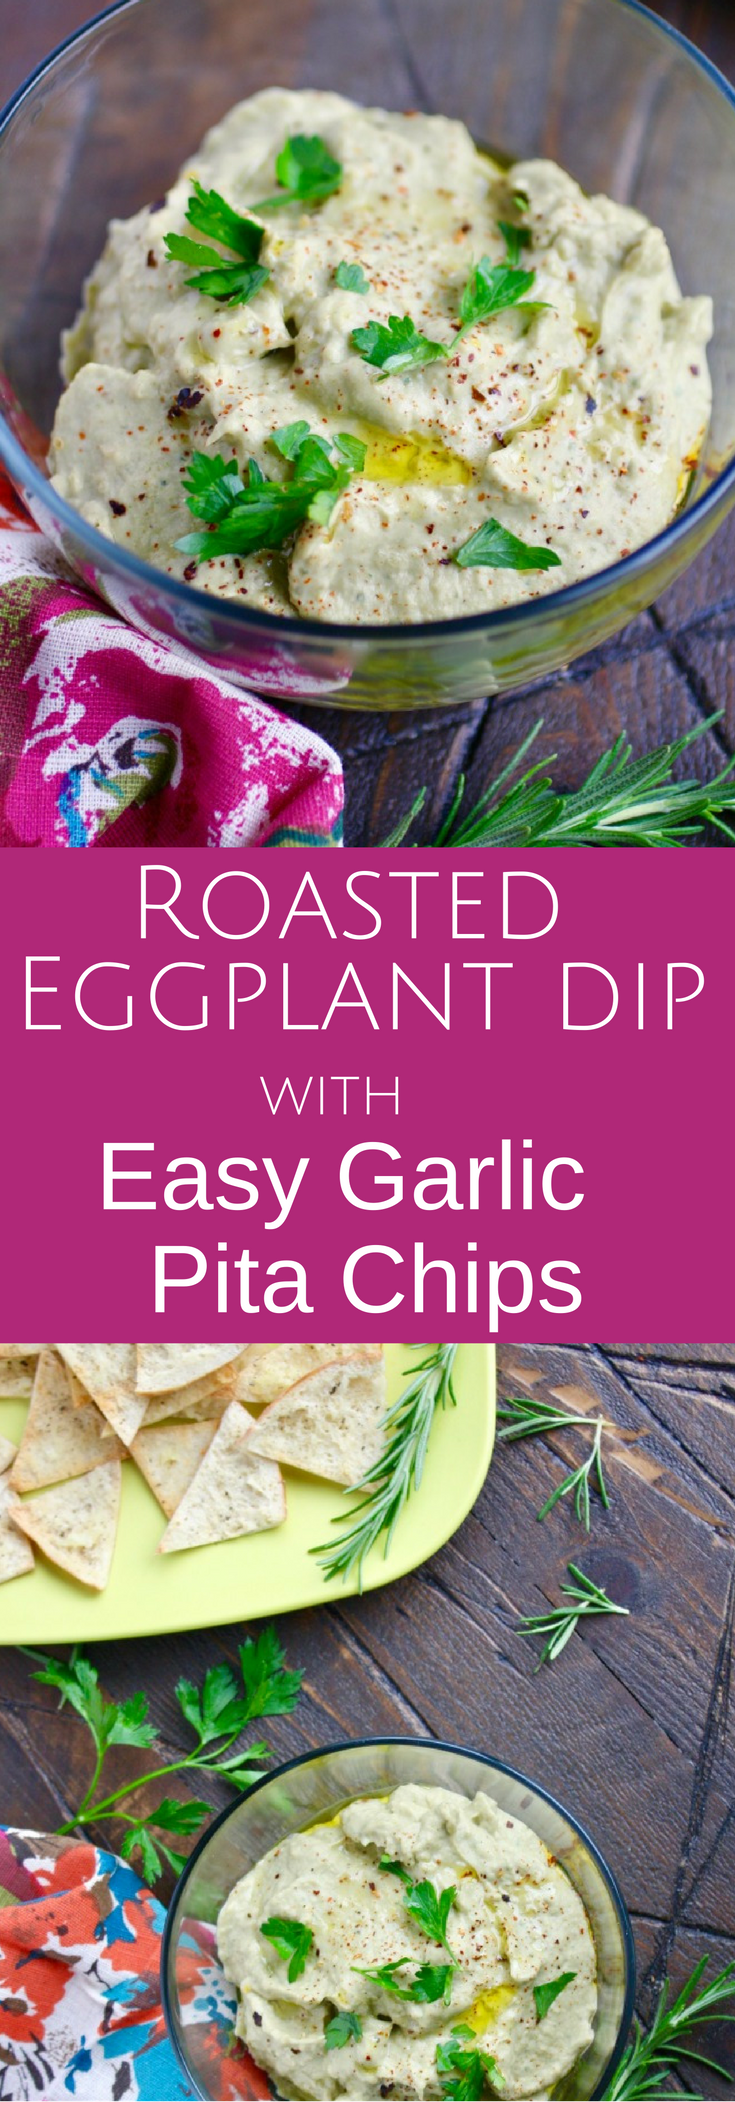 You'll love this flavorful combo: Roasted Eggplant Dip with Easy Garlic Pita Chips -- great to serve any time!